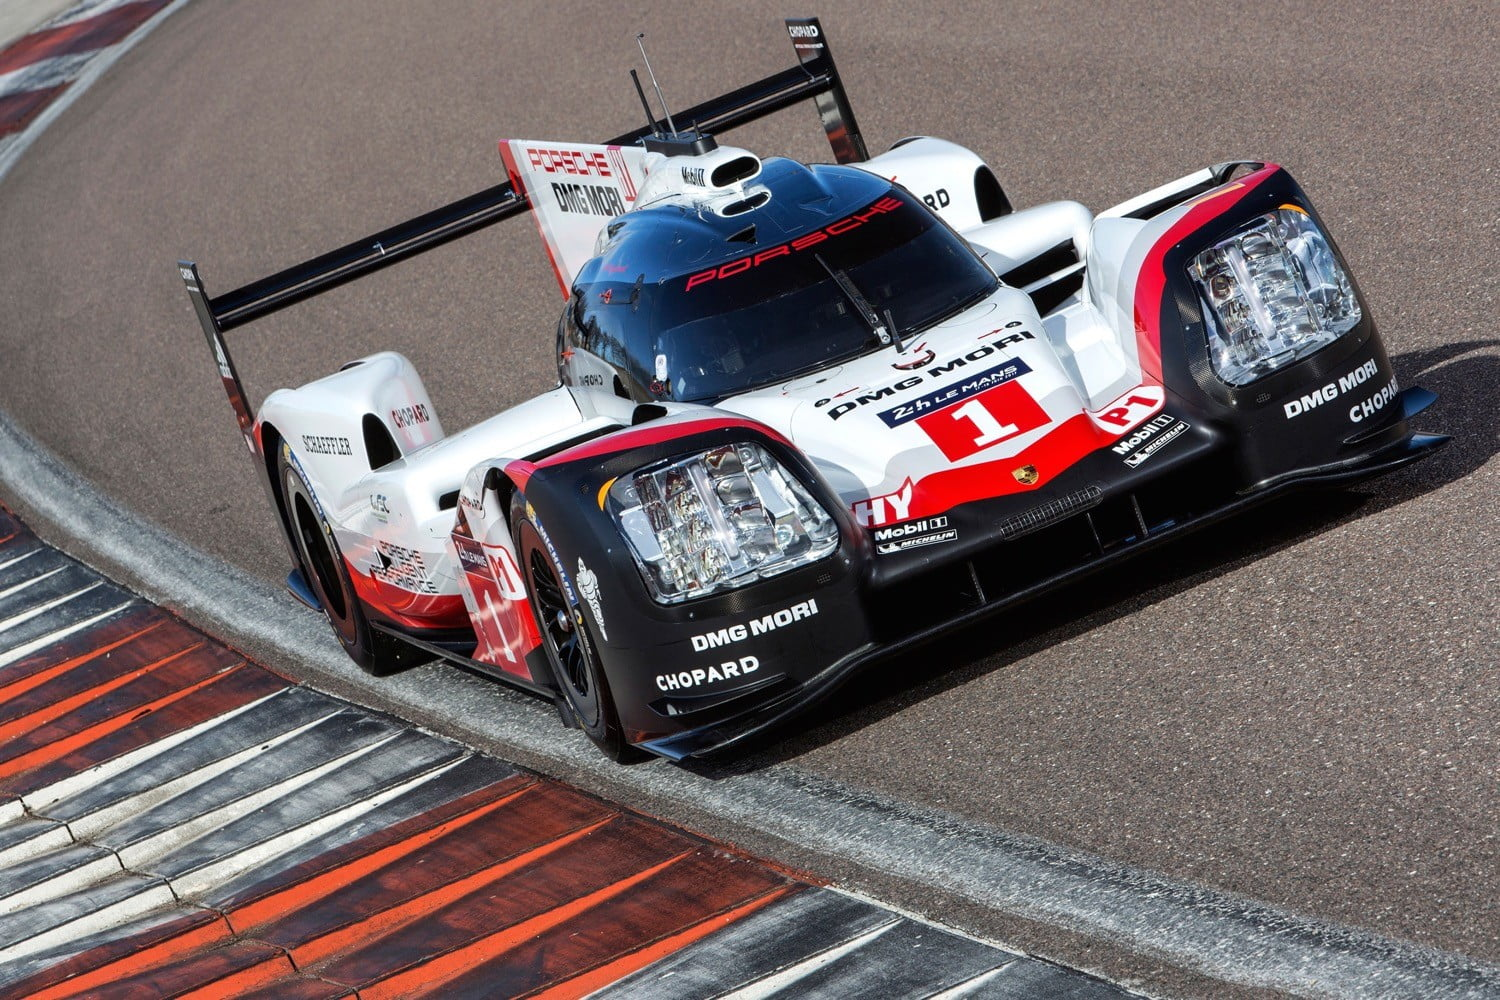 Porsche S 919 Hybrid Screams Out Of The Corners With Electric All Wheel Drive